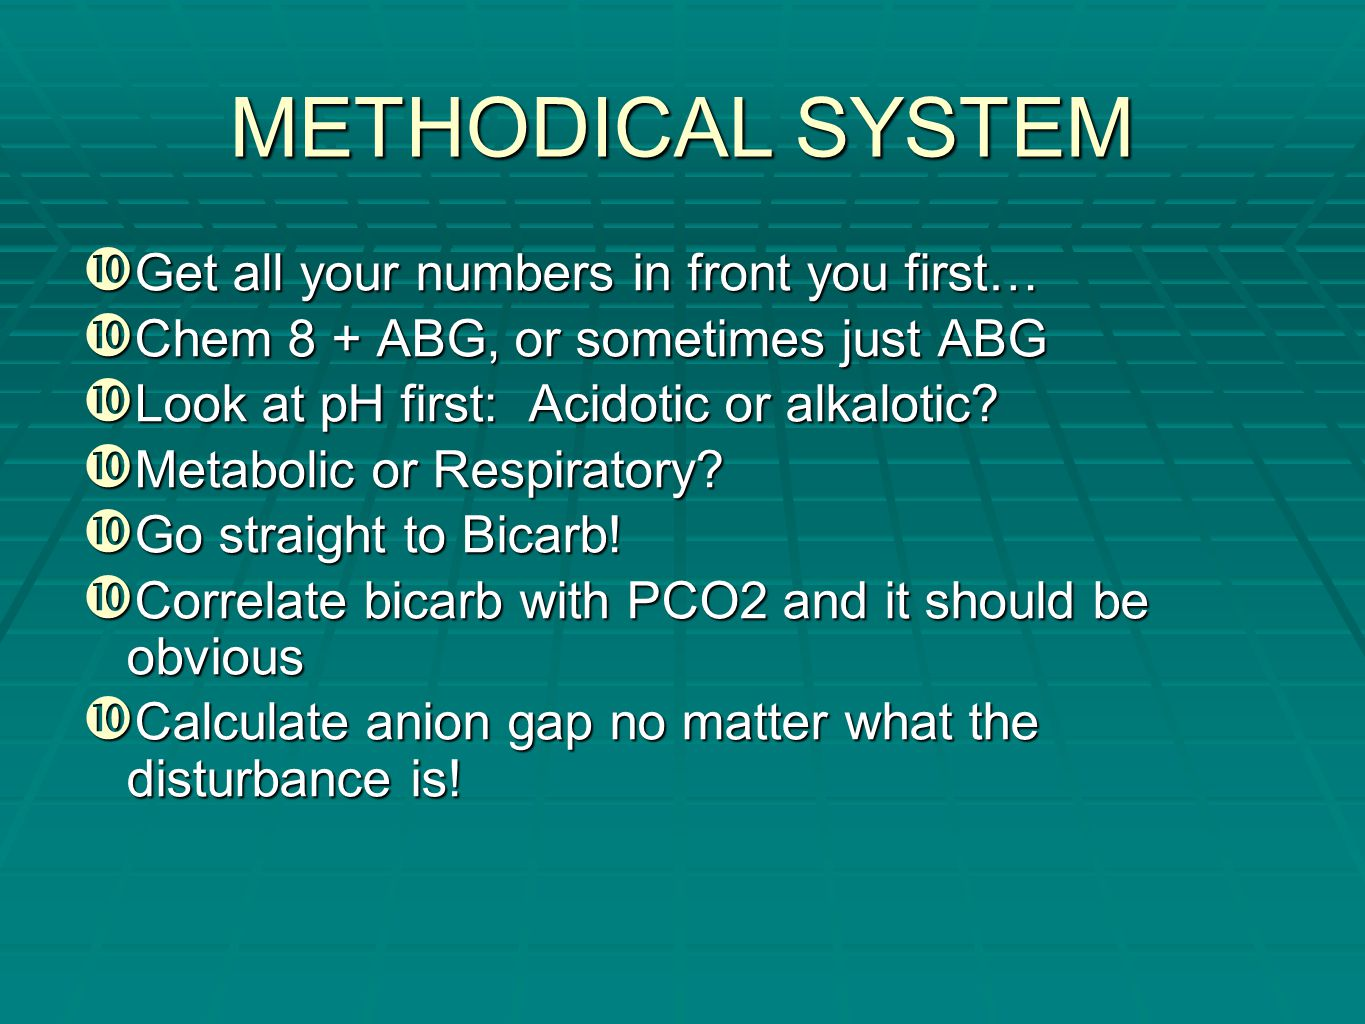 METHODICAL SYSTEM  Get all your numbers in front you first…  Chem 8 + ABG, or sometimes just ABG  Look at pH first: Acidotic or alkalotic?  Metabo